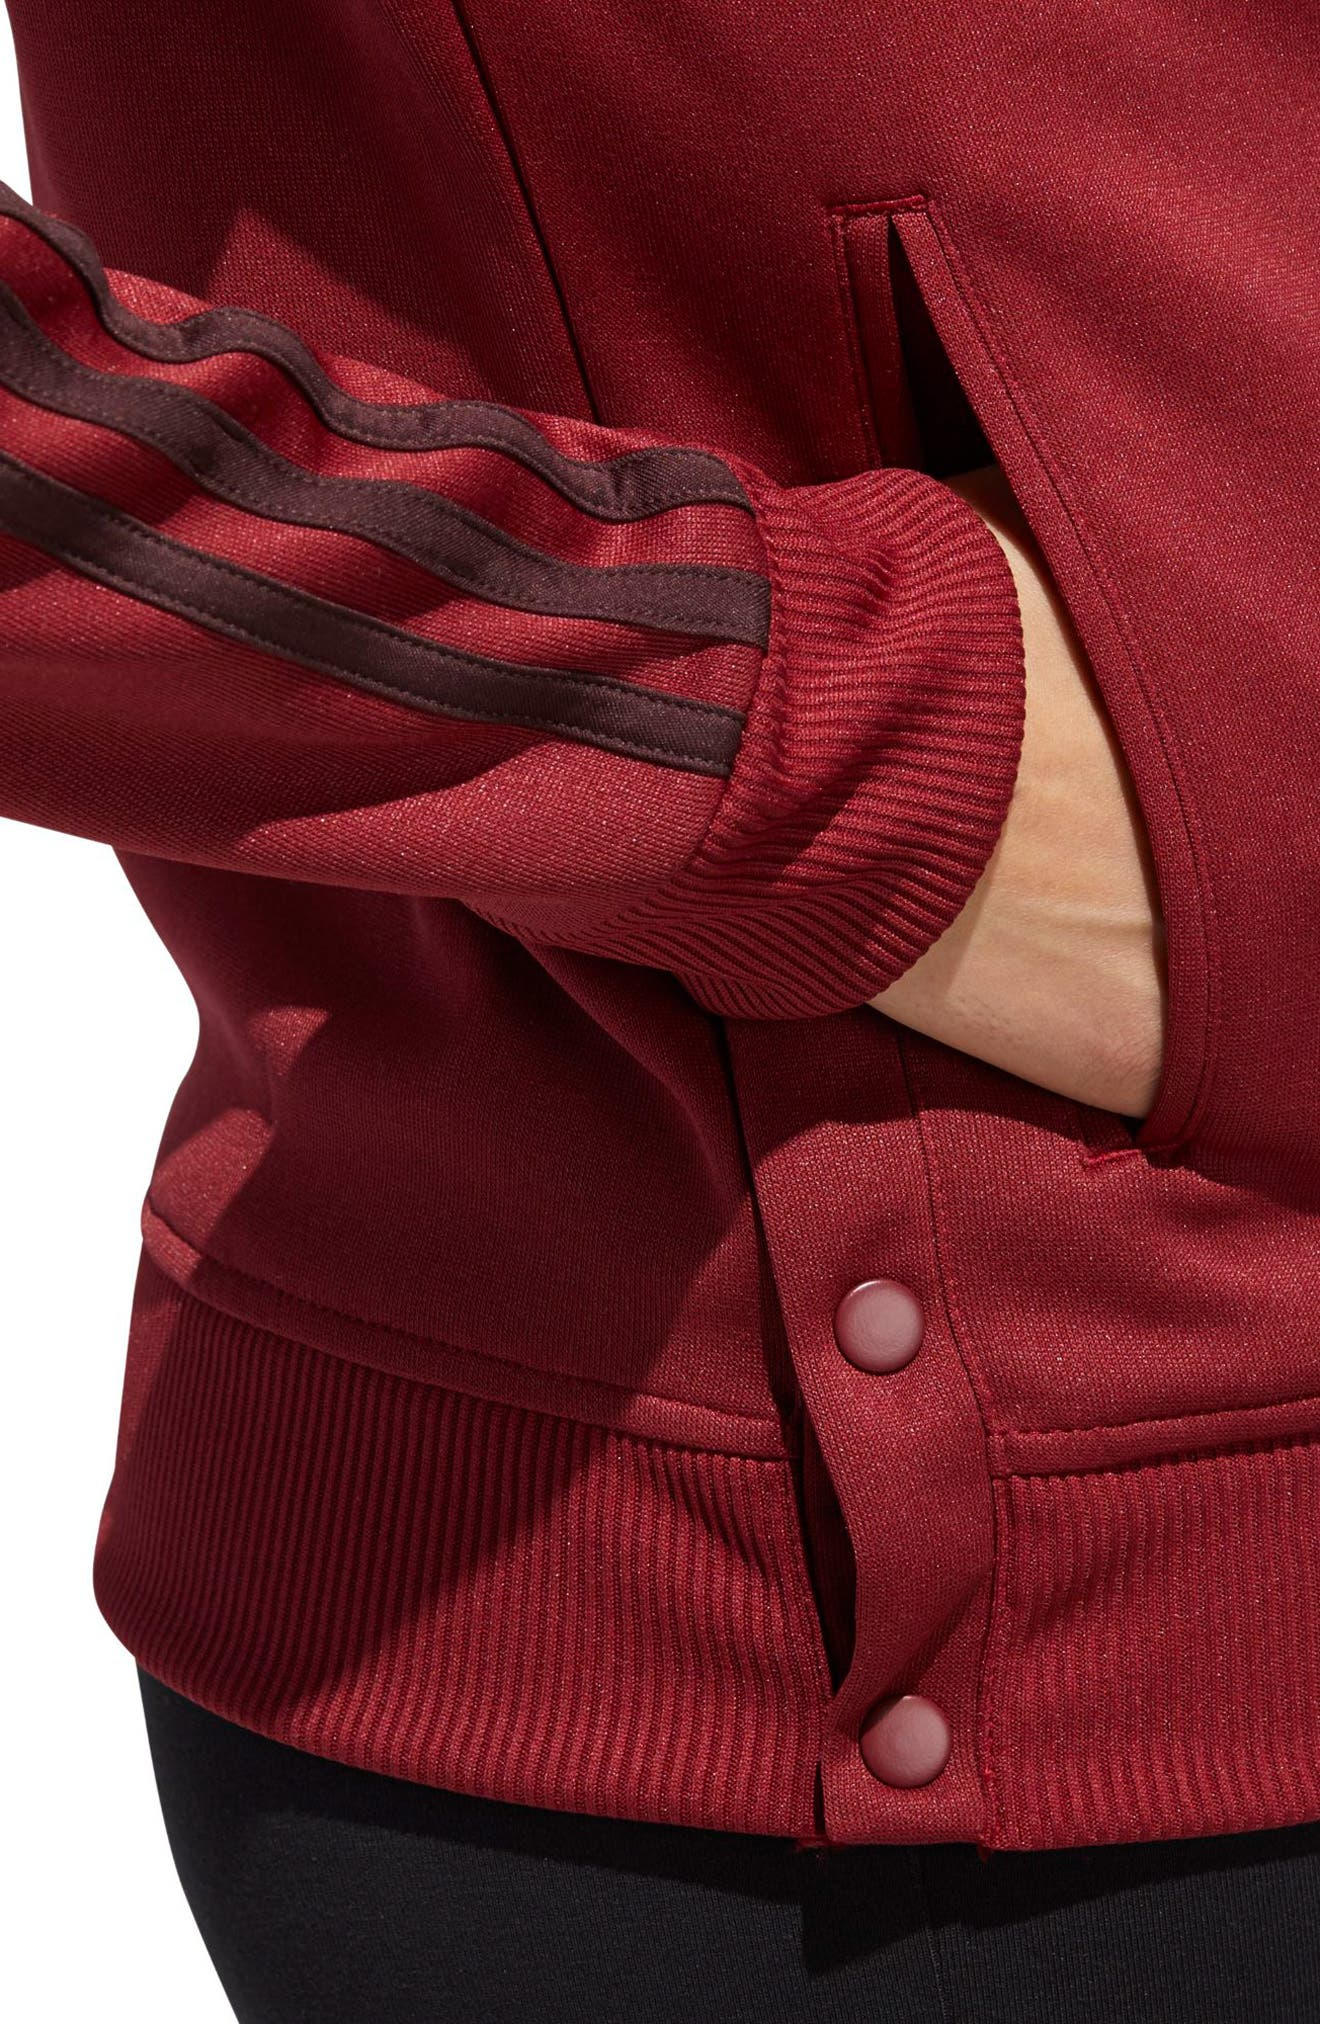 Snap Hem Track Jacket,                             Alternate thumbnail 4, color,                             NOBLE MAROON/ NIGHT RED